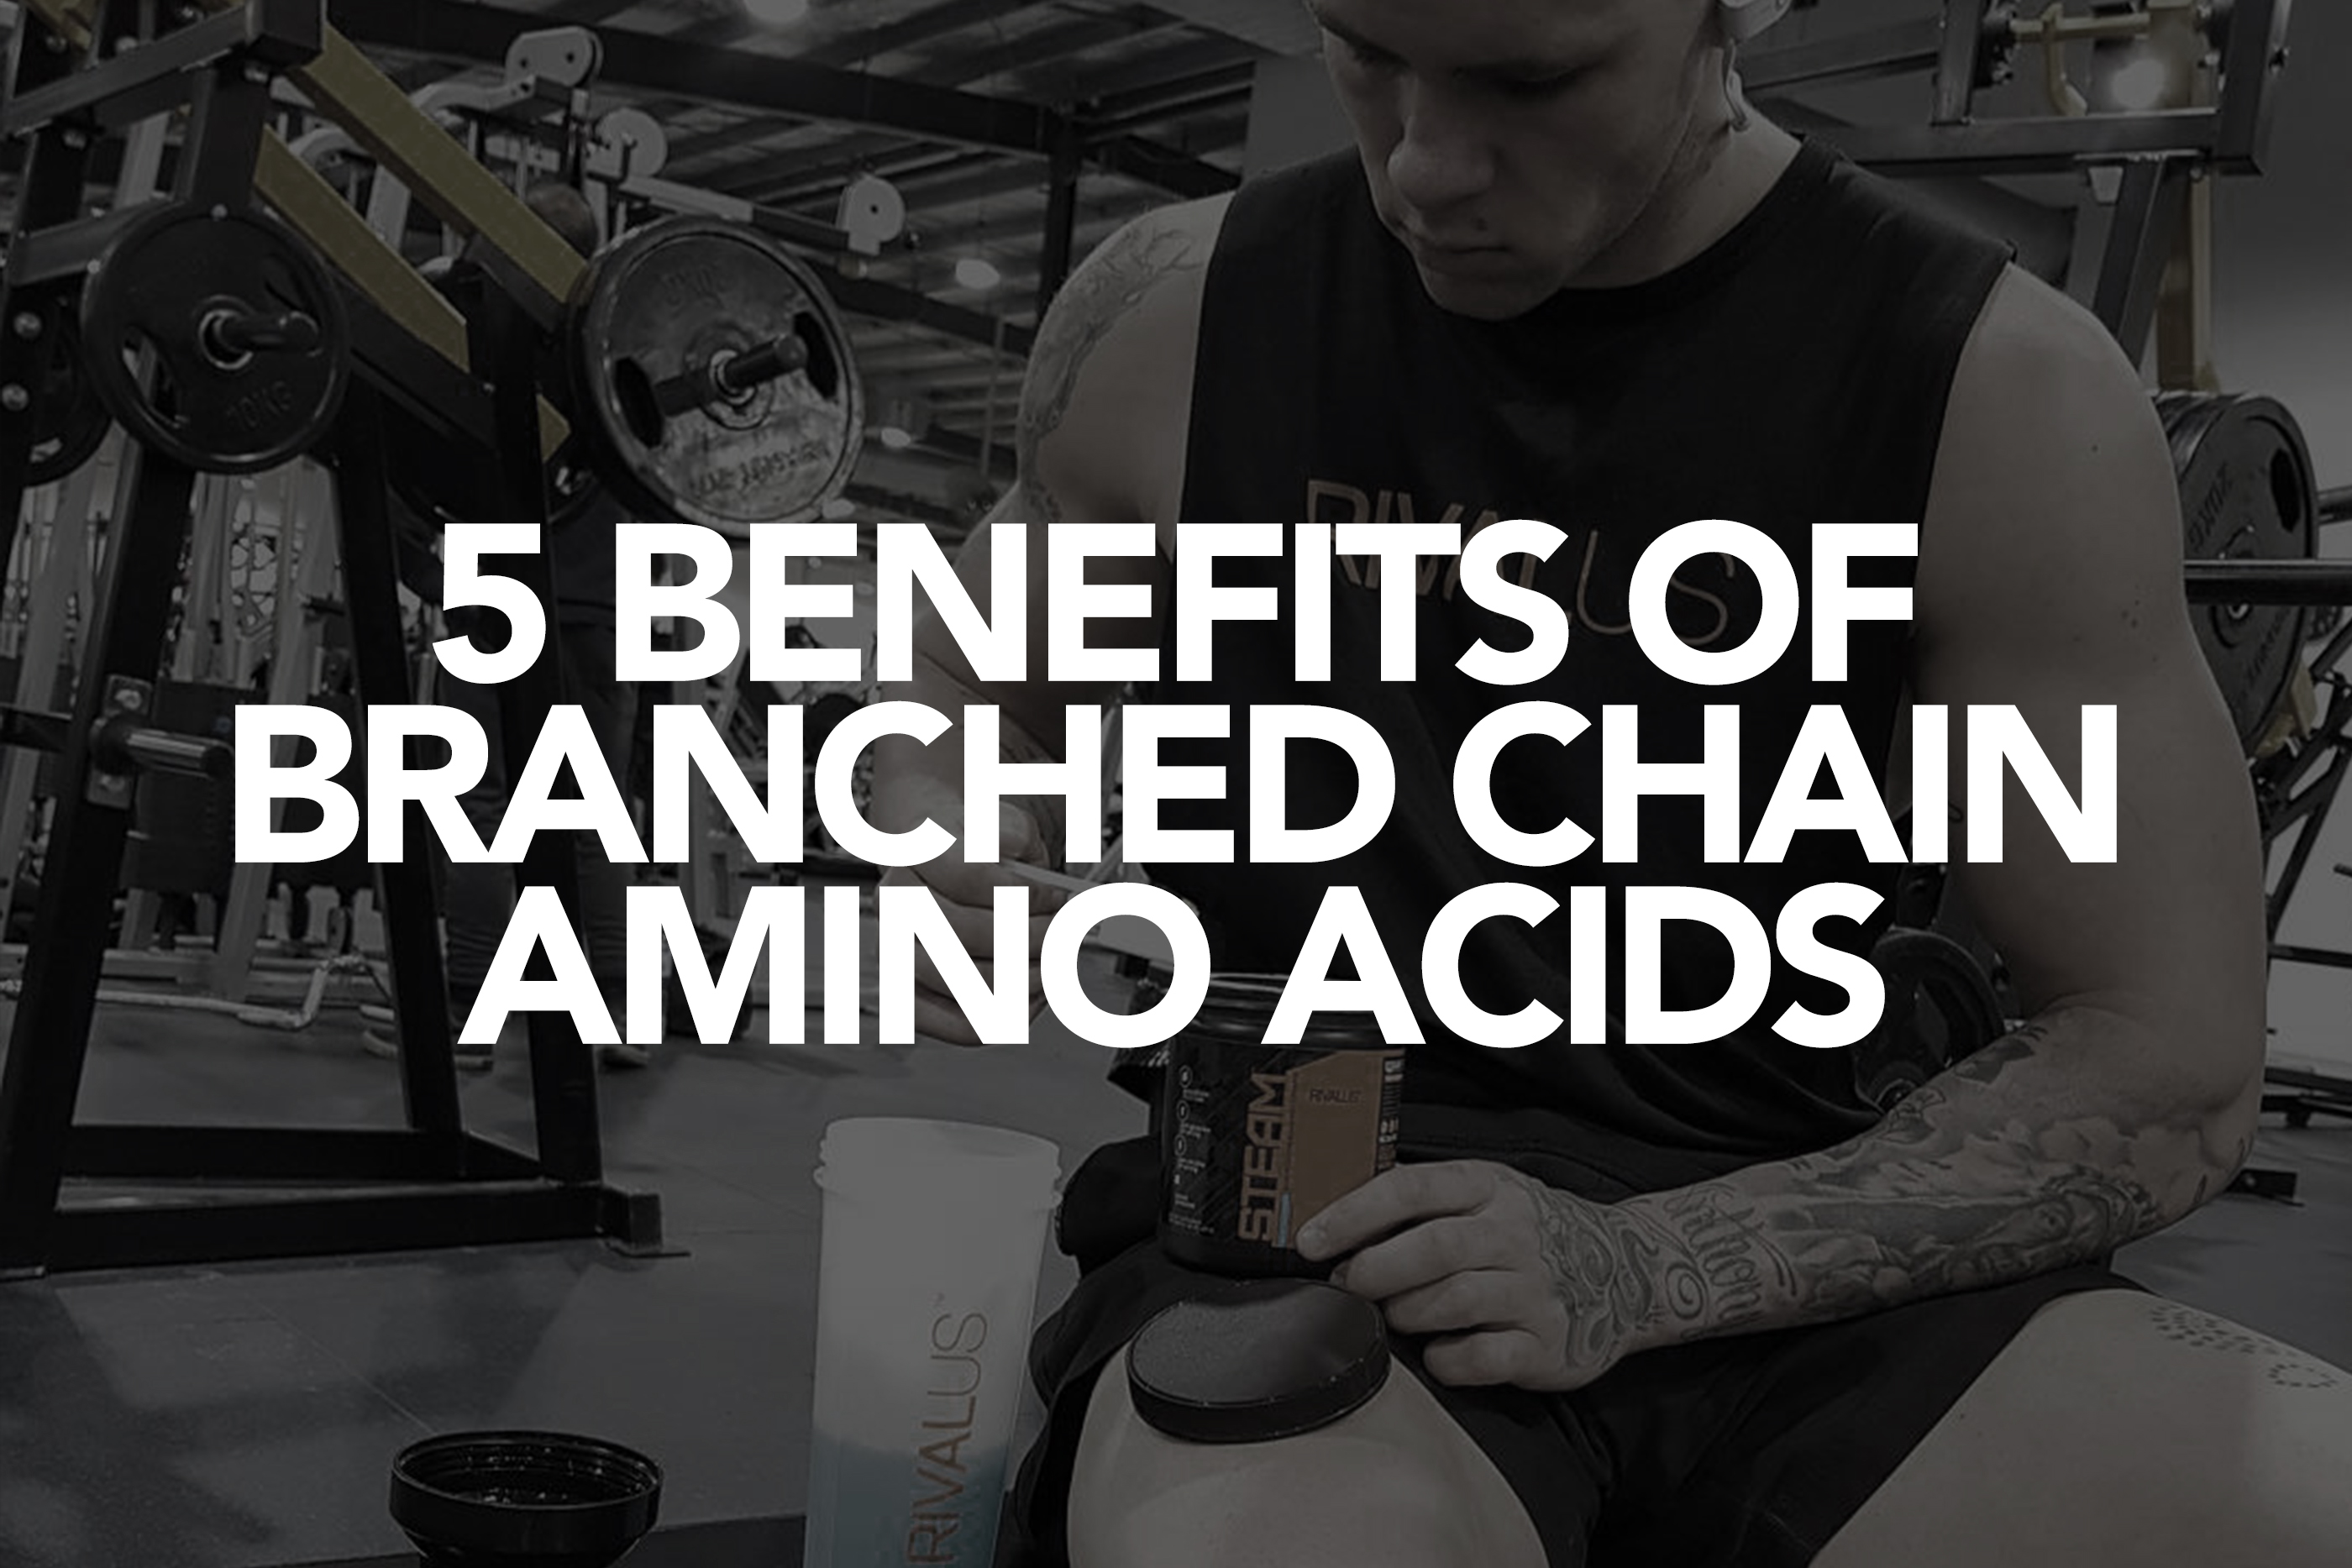 5 Benefits of BCAAs